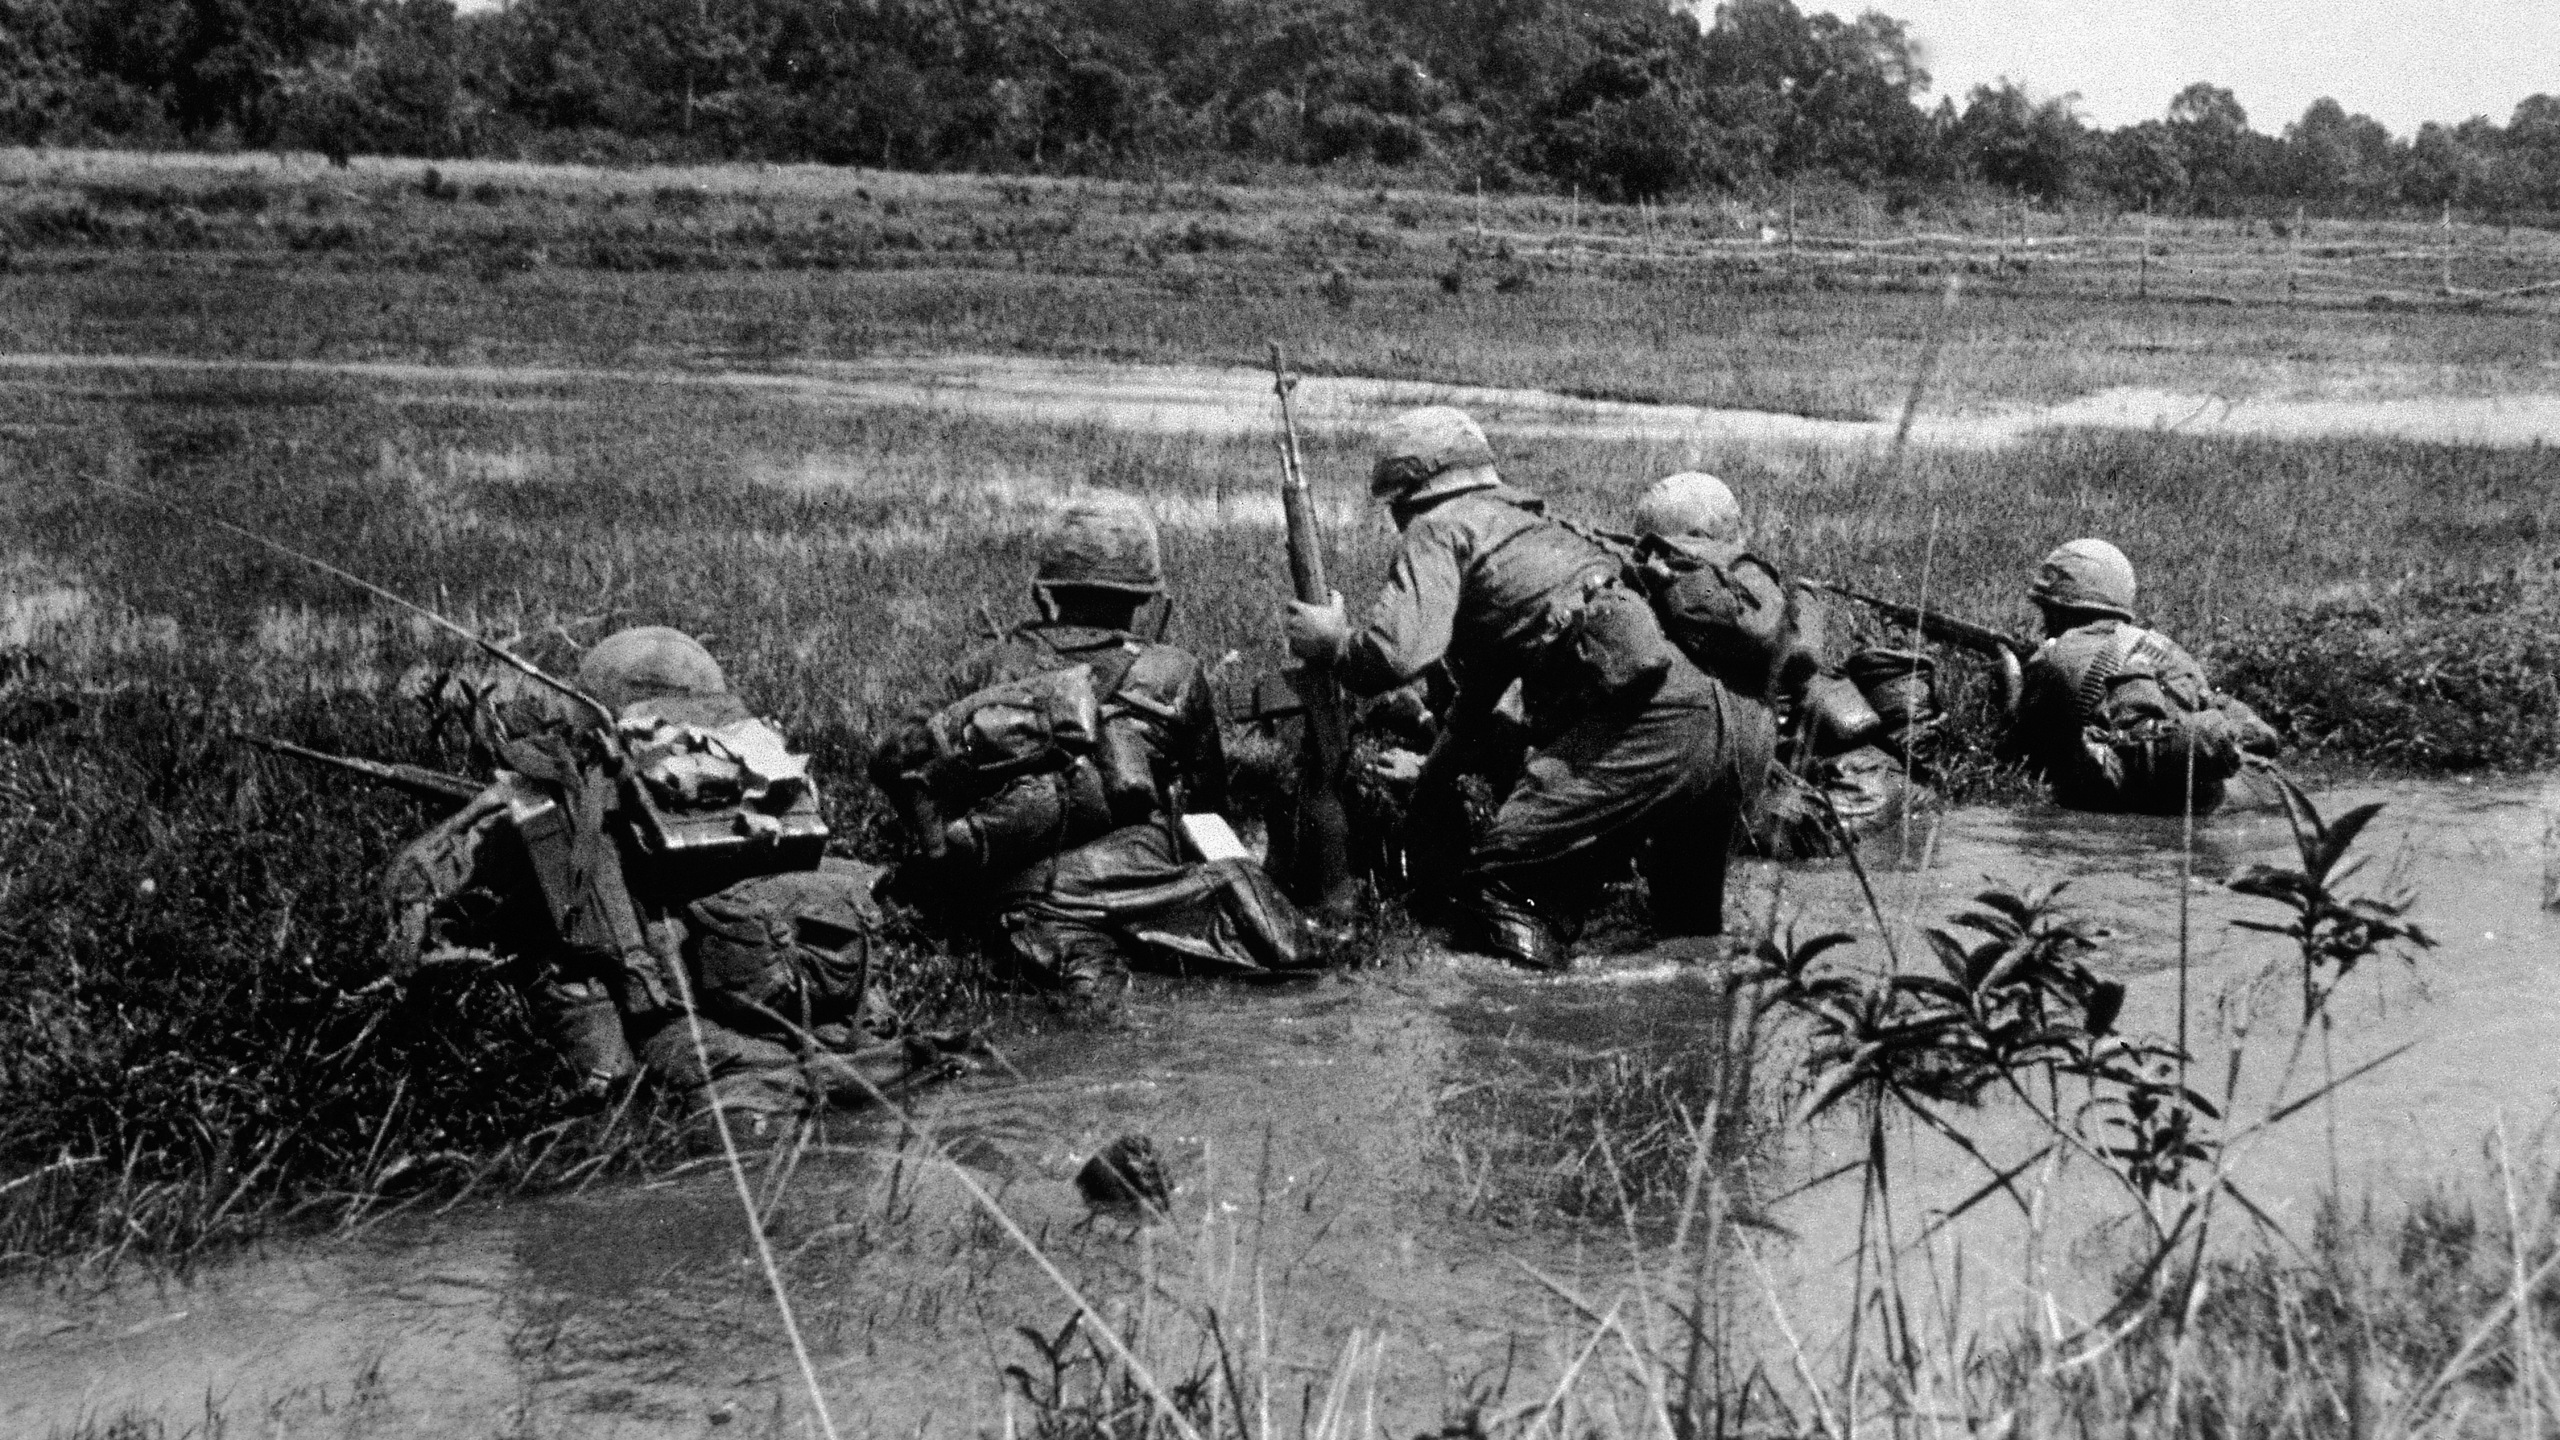 American army combat platoon leader Second Lieutenant John Libs (center) of 2nd platoon, C Company, 2d Battalion, 16th Infantry Regiment, 1st Division, surveys the situation in Vietnam, mid 1960s. (Credit: Hulton Archive/Getty Images)